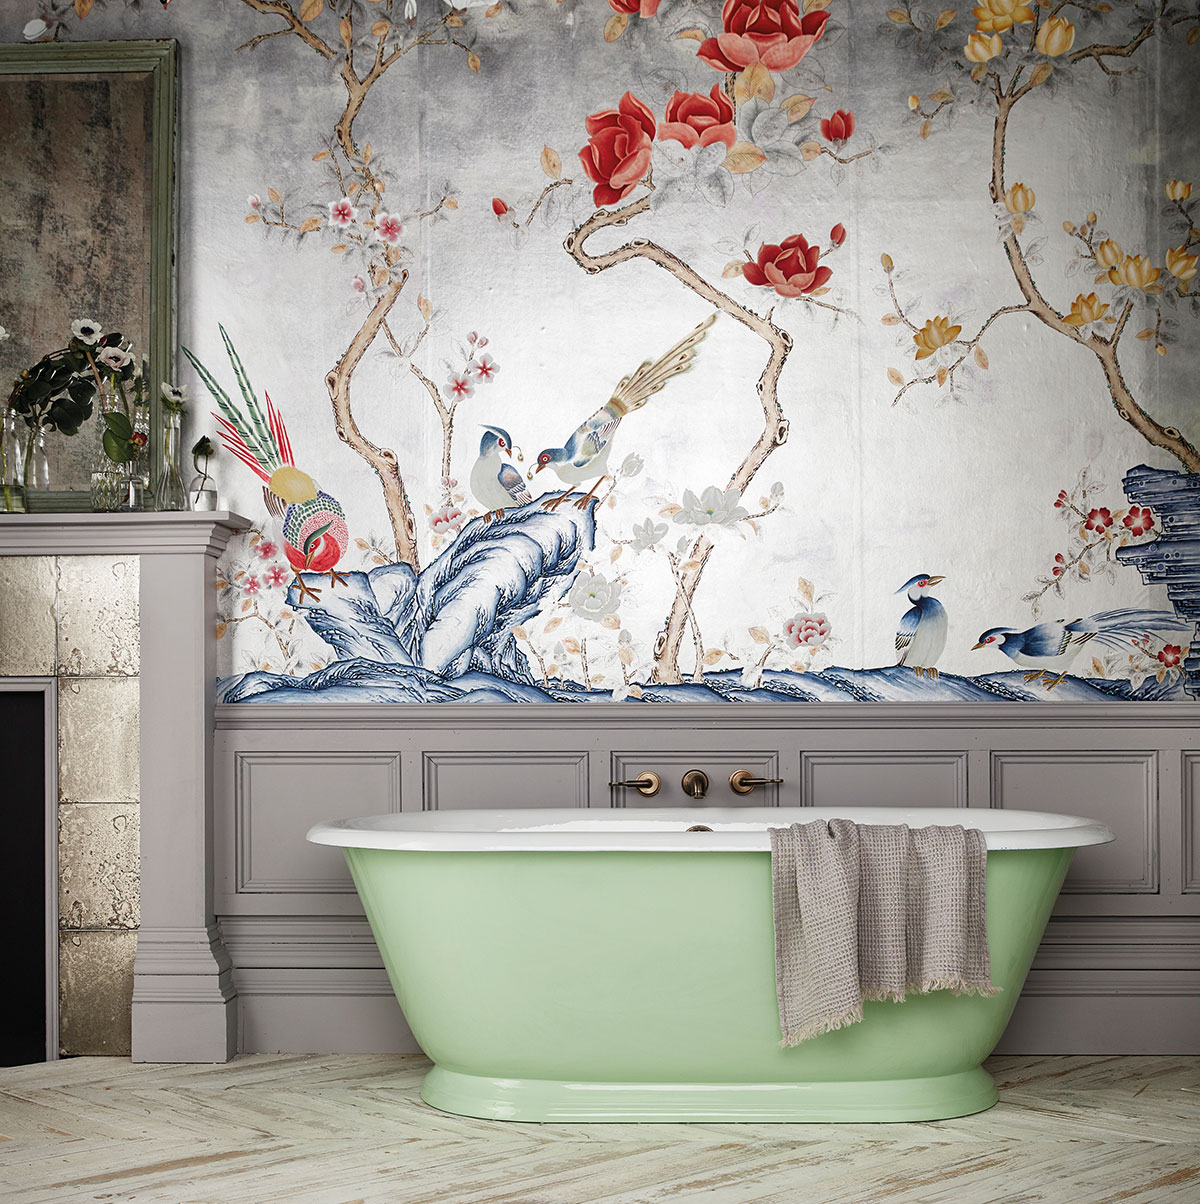 Green freestanding bath